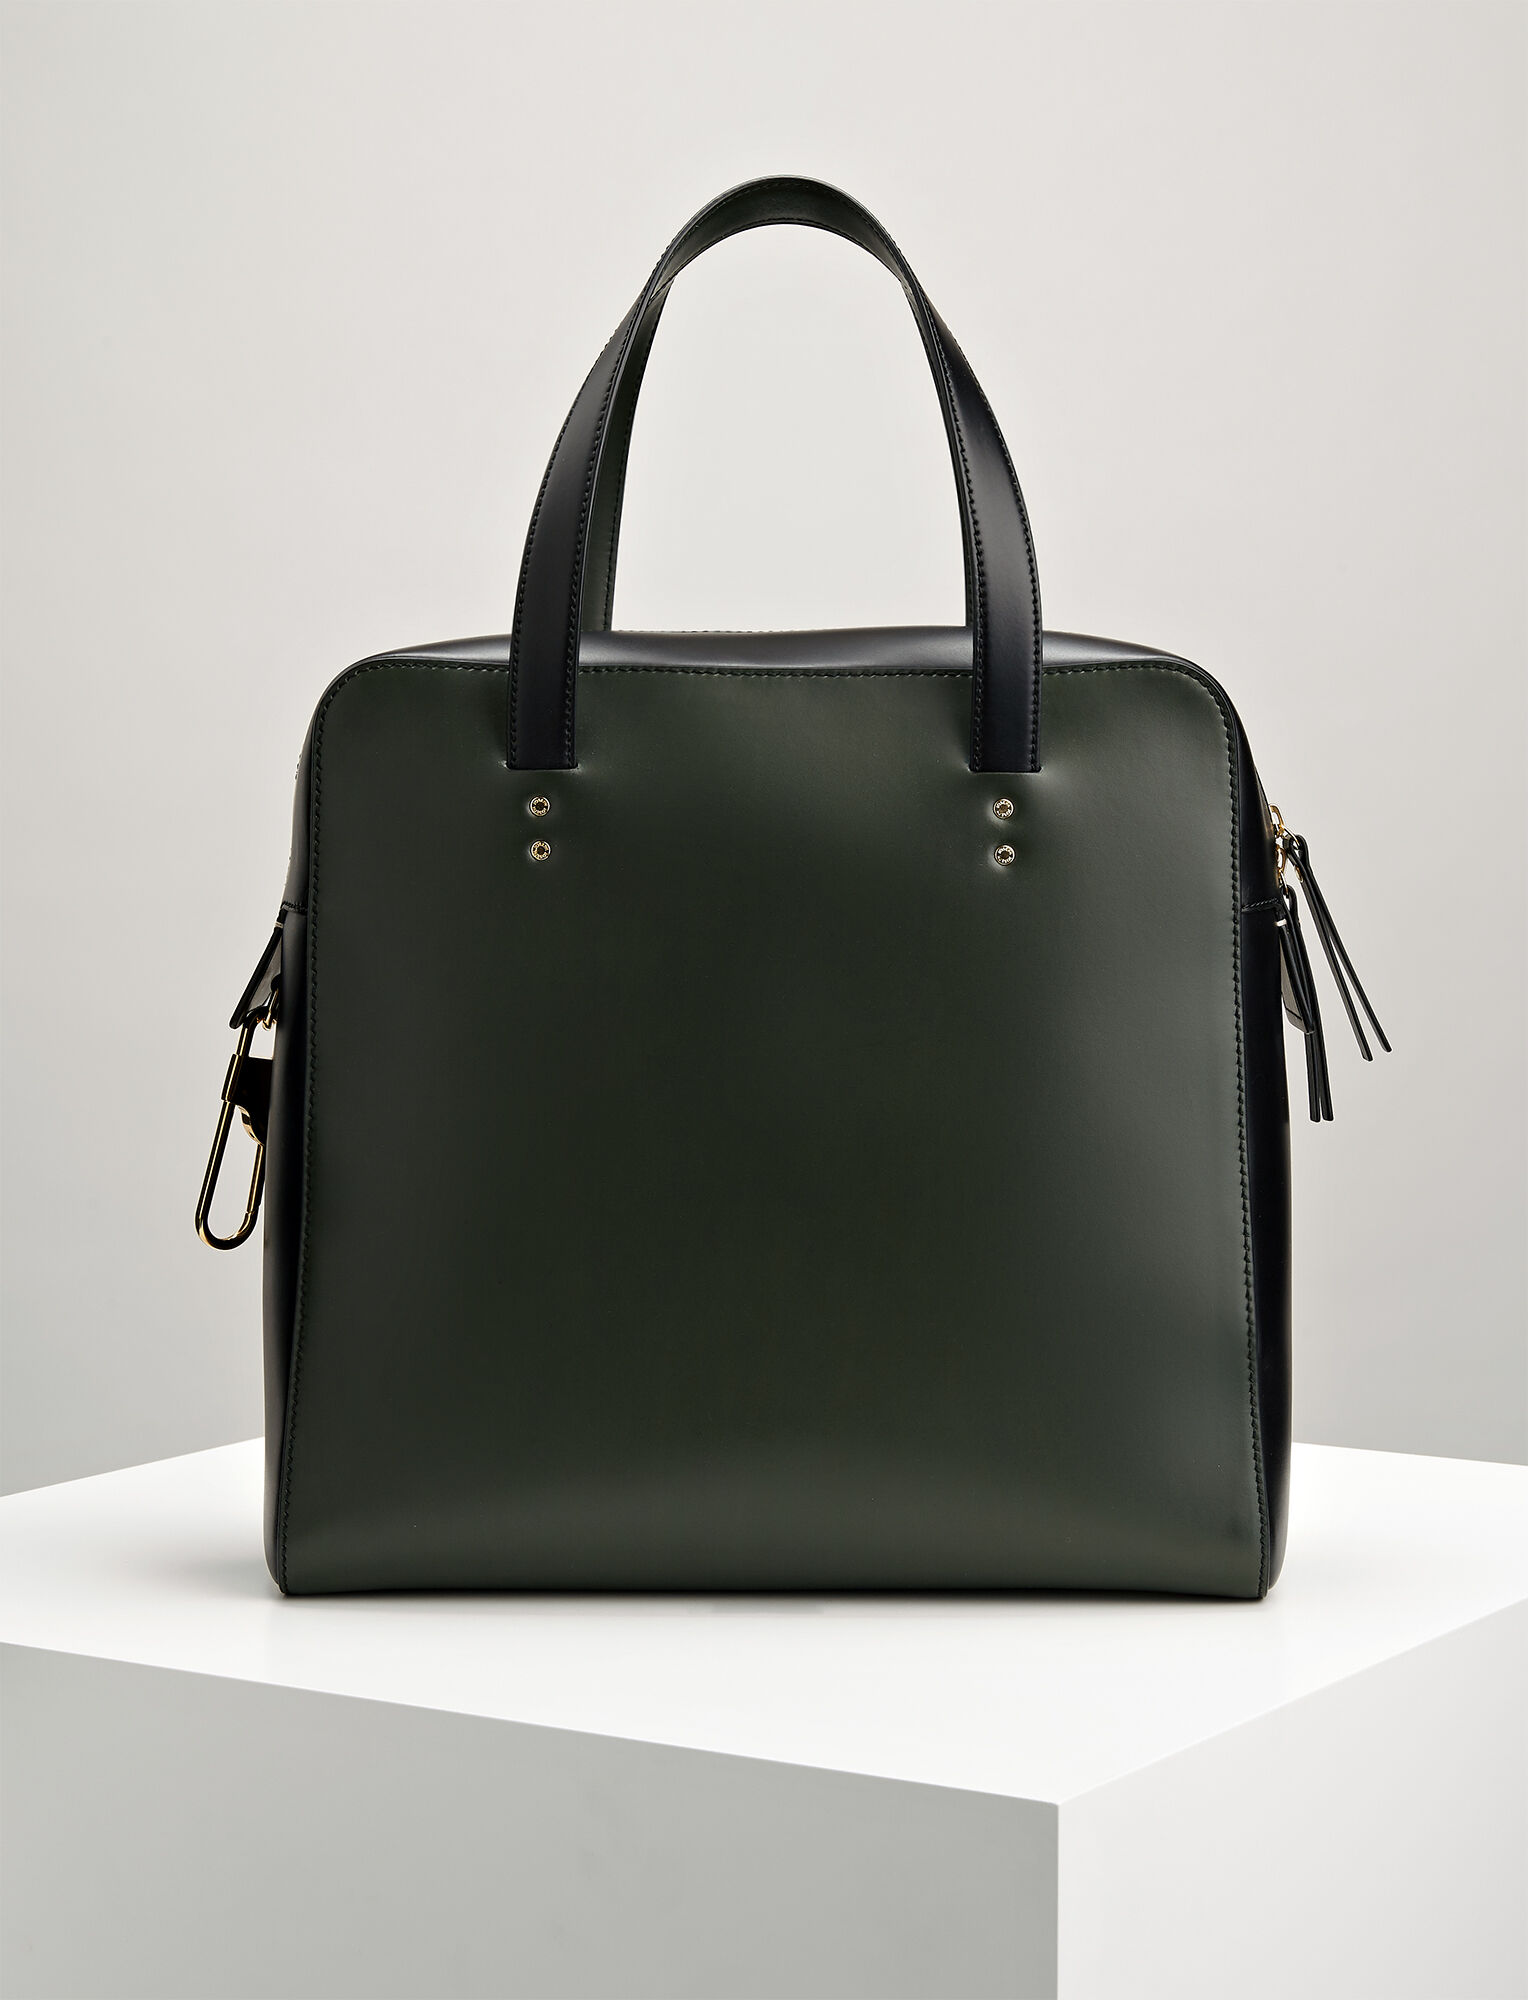 Joseph, Leather Ryder Bag, in FOREST